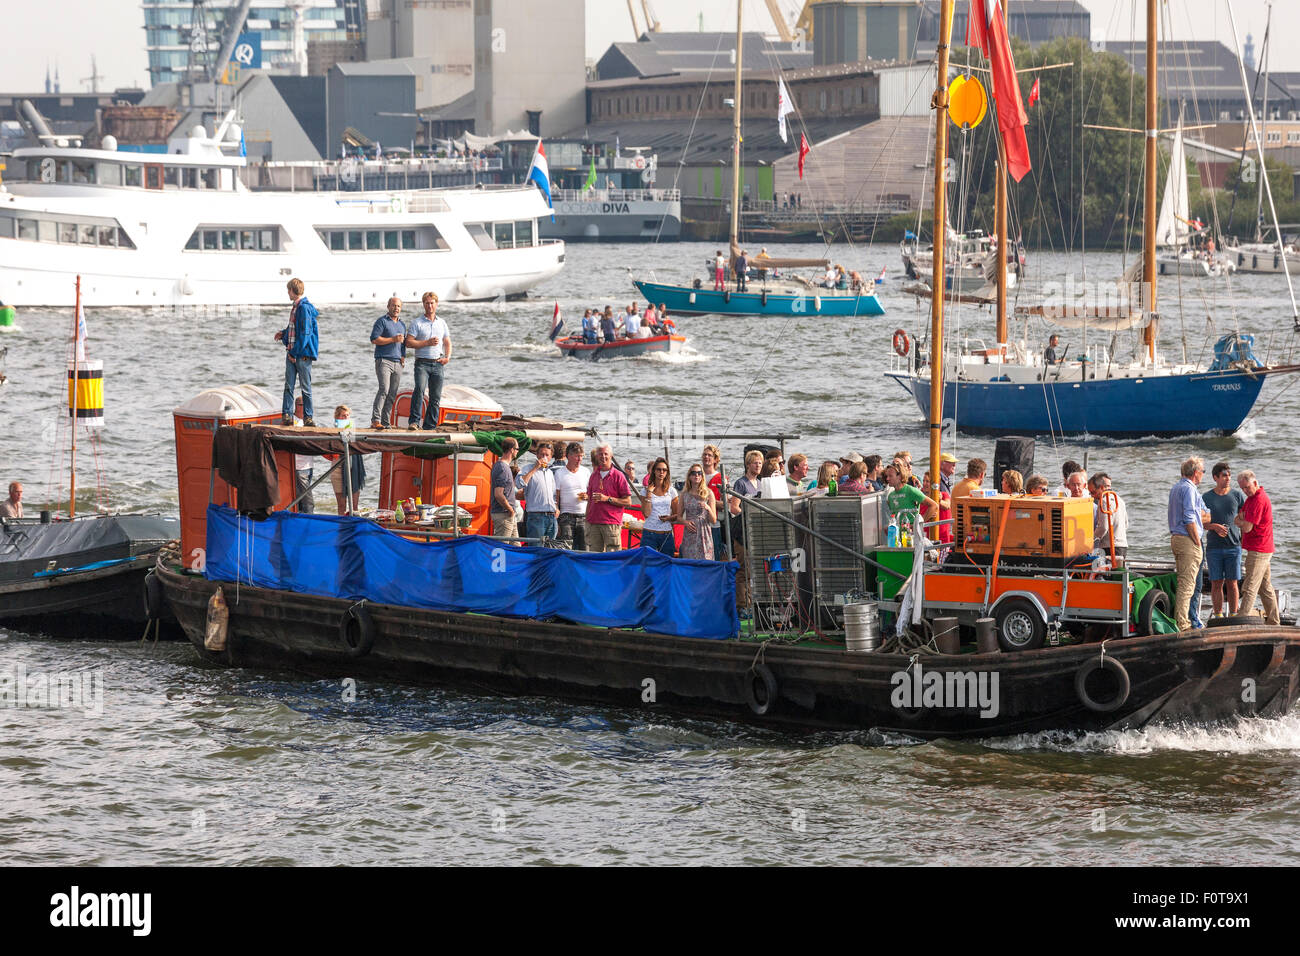 A primitive improvised party ship, boat Amsterdam Sail 2015 - Stock Image